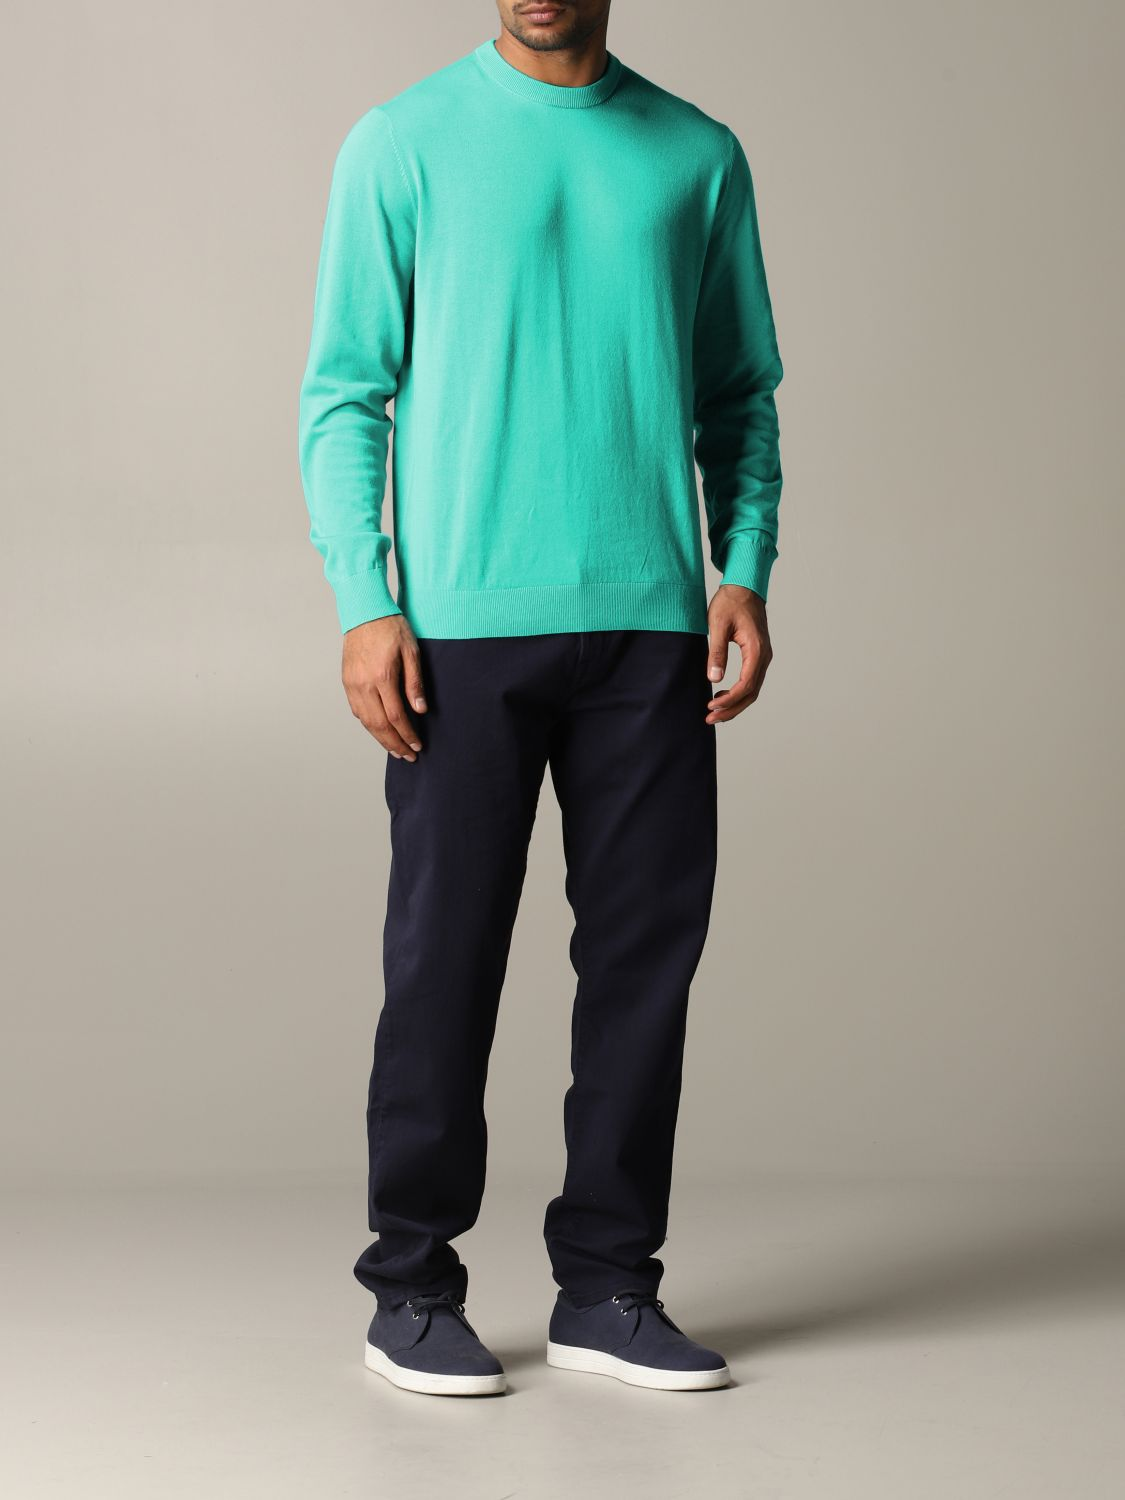 Jumper men Paul Smith London sea 2